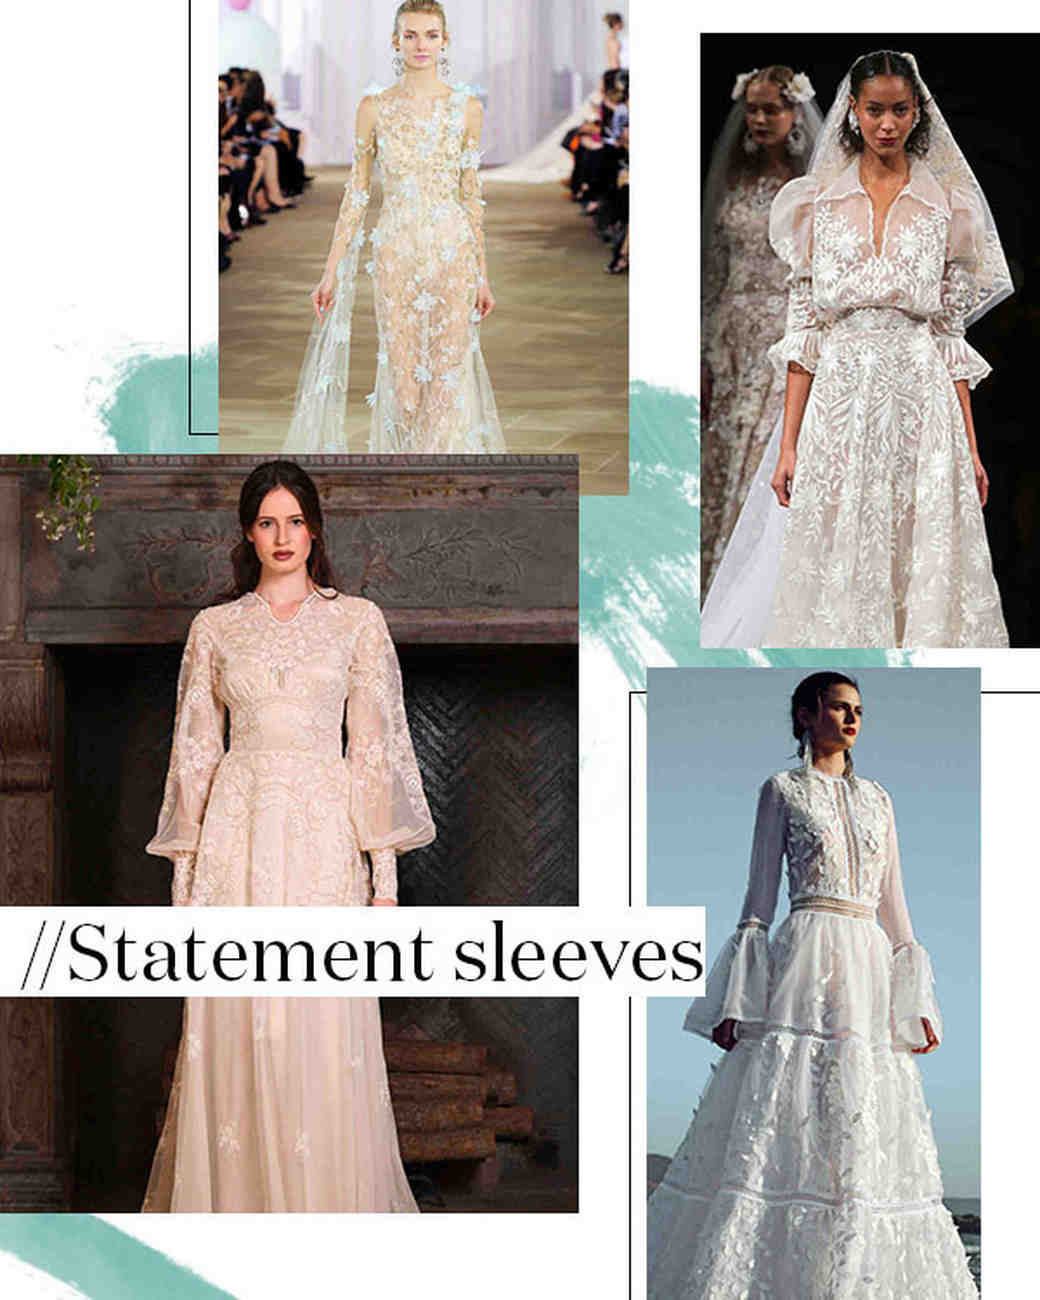 Fall 2017 Wedding Dress Trend: Statement Sleeves